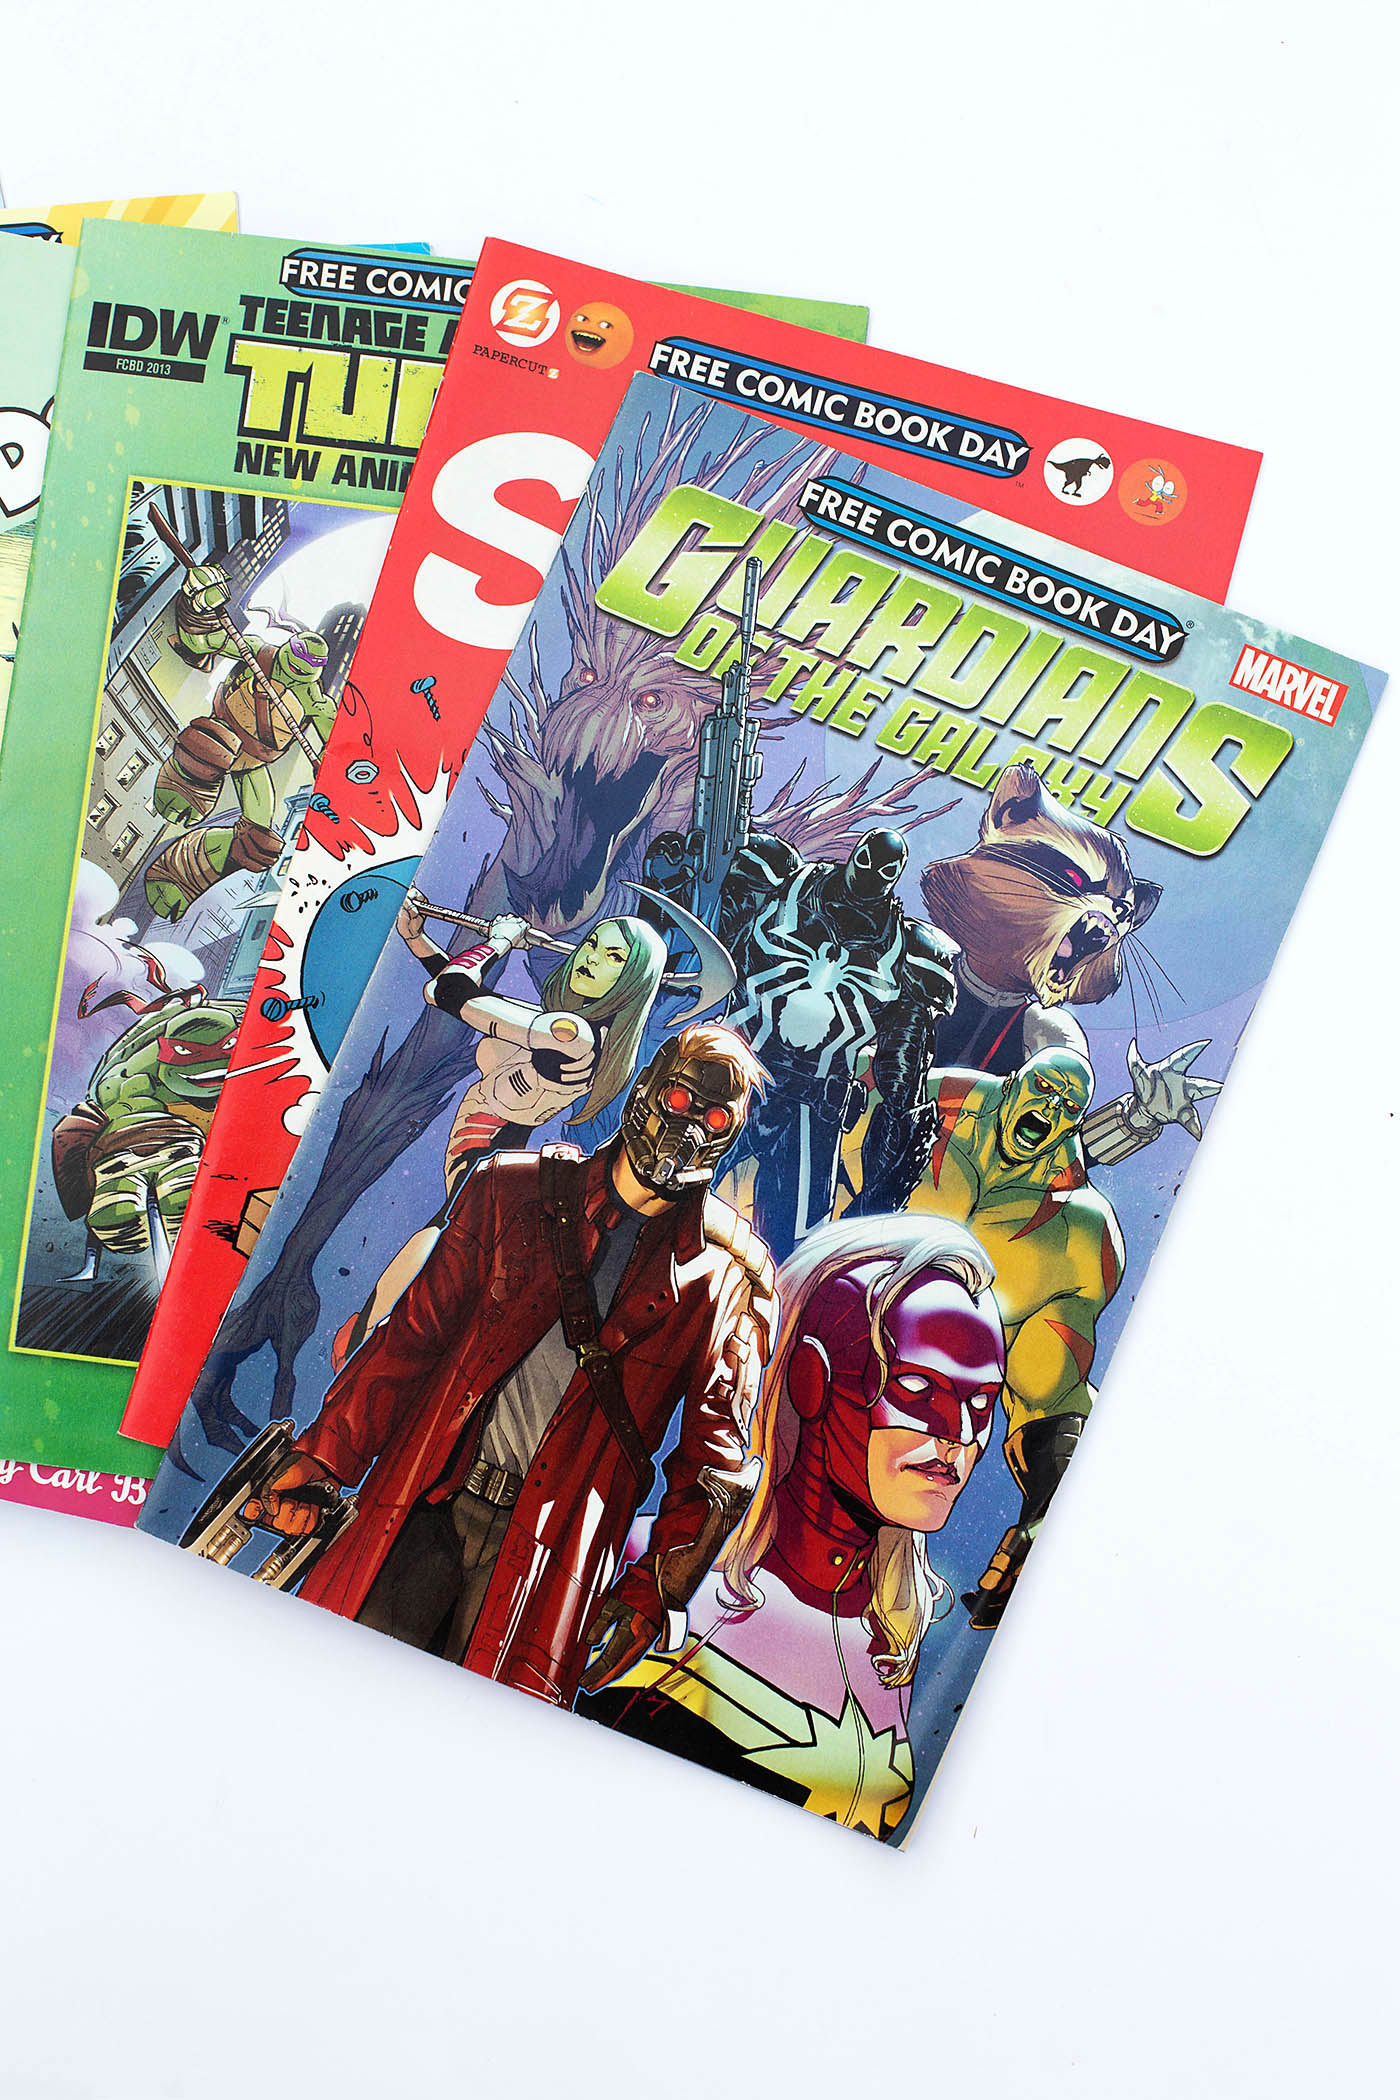 Free Comic Book Day! All the info on how to participate and what comics will be free